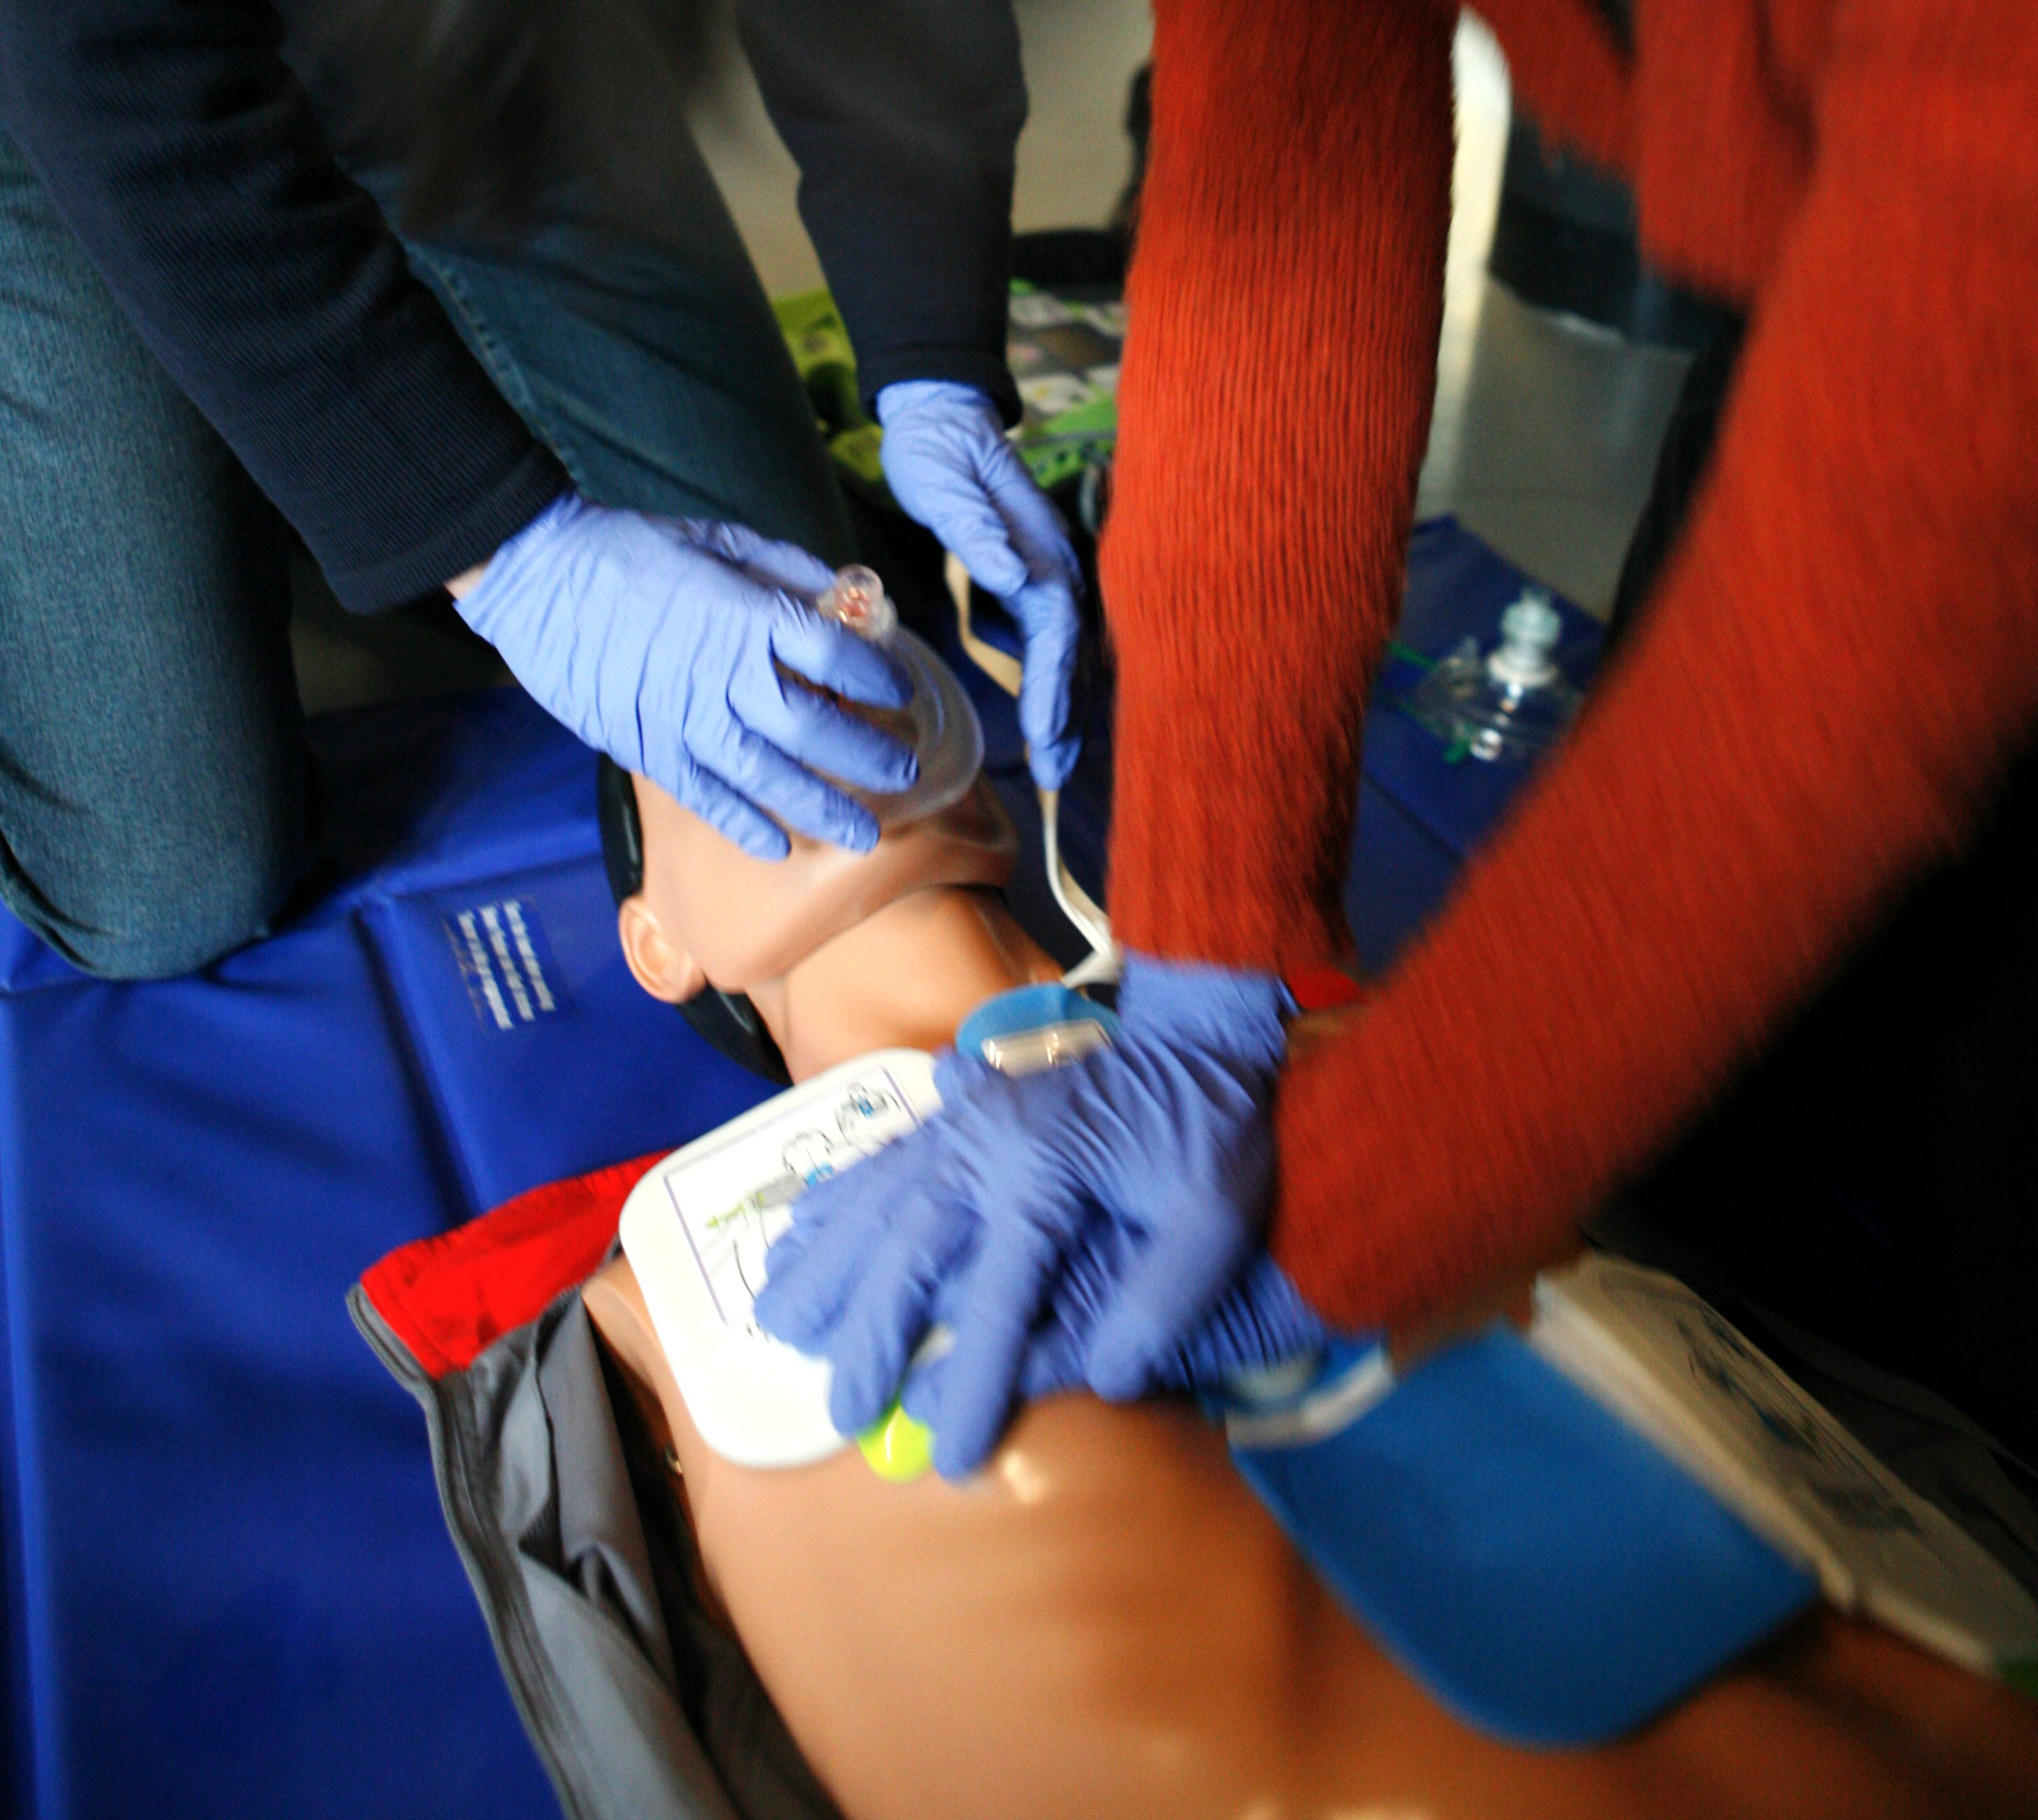 History of cardiopulmonary resuscitation